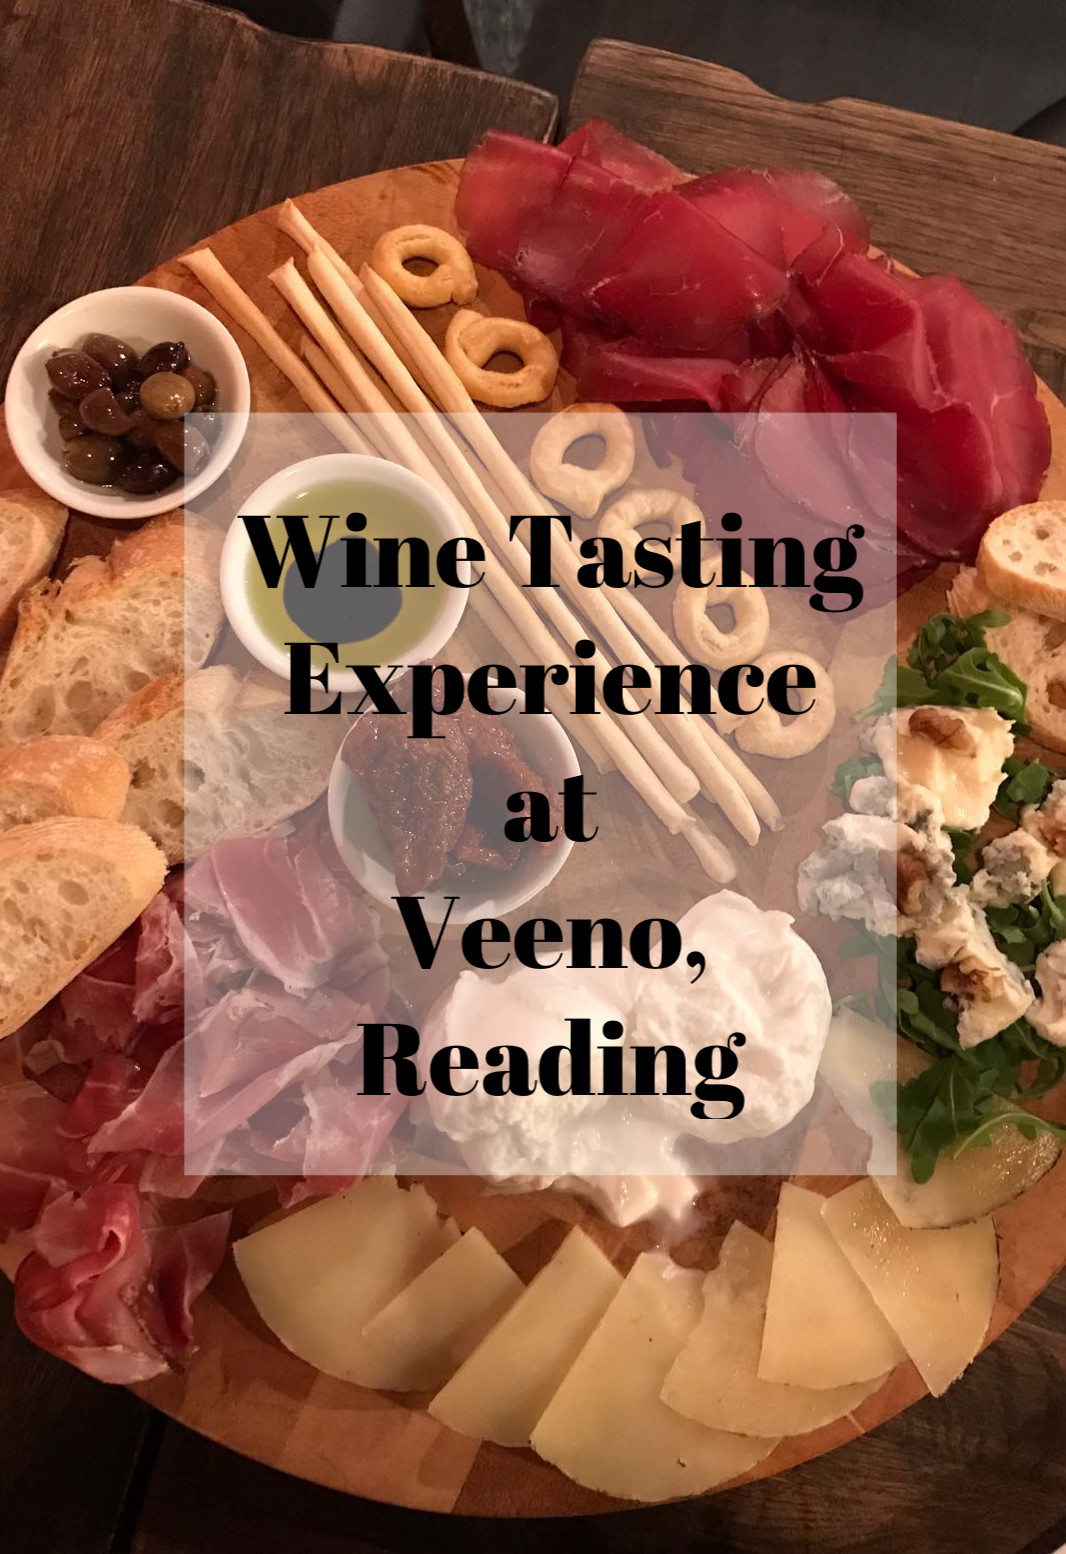 Wine Tasting Experience at Veeno, Reading